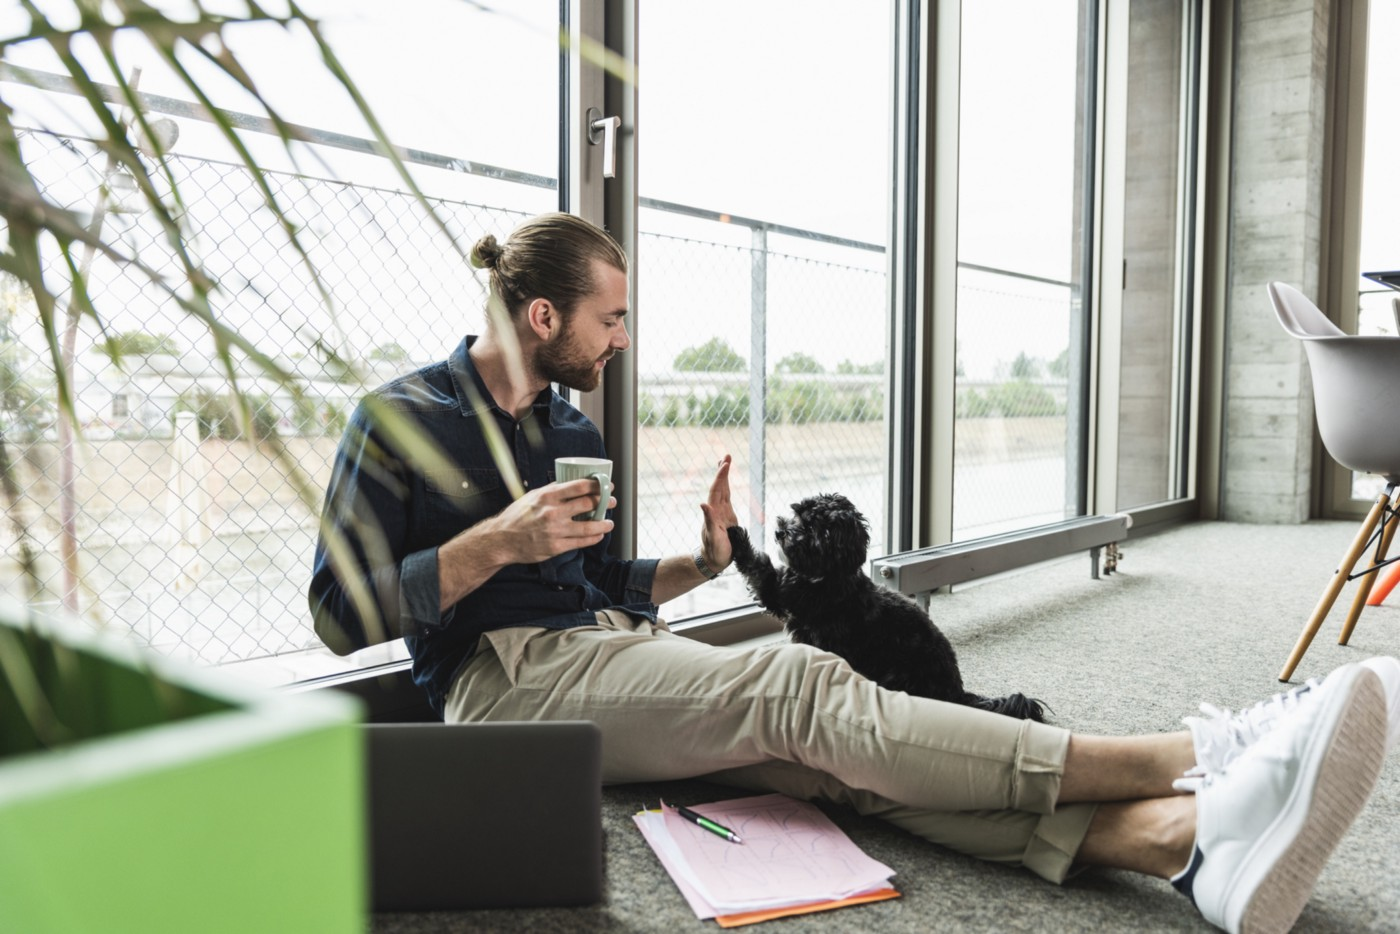 A young man with a laptop sits on the floor in an office and gives a high-five to his dog